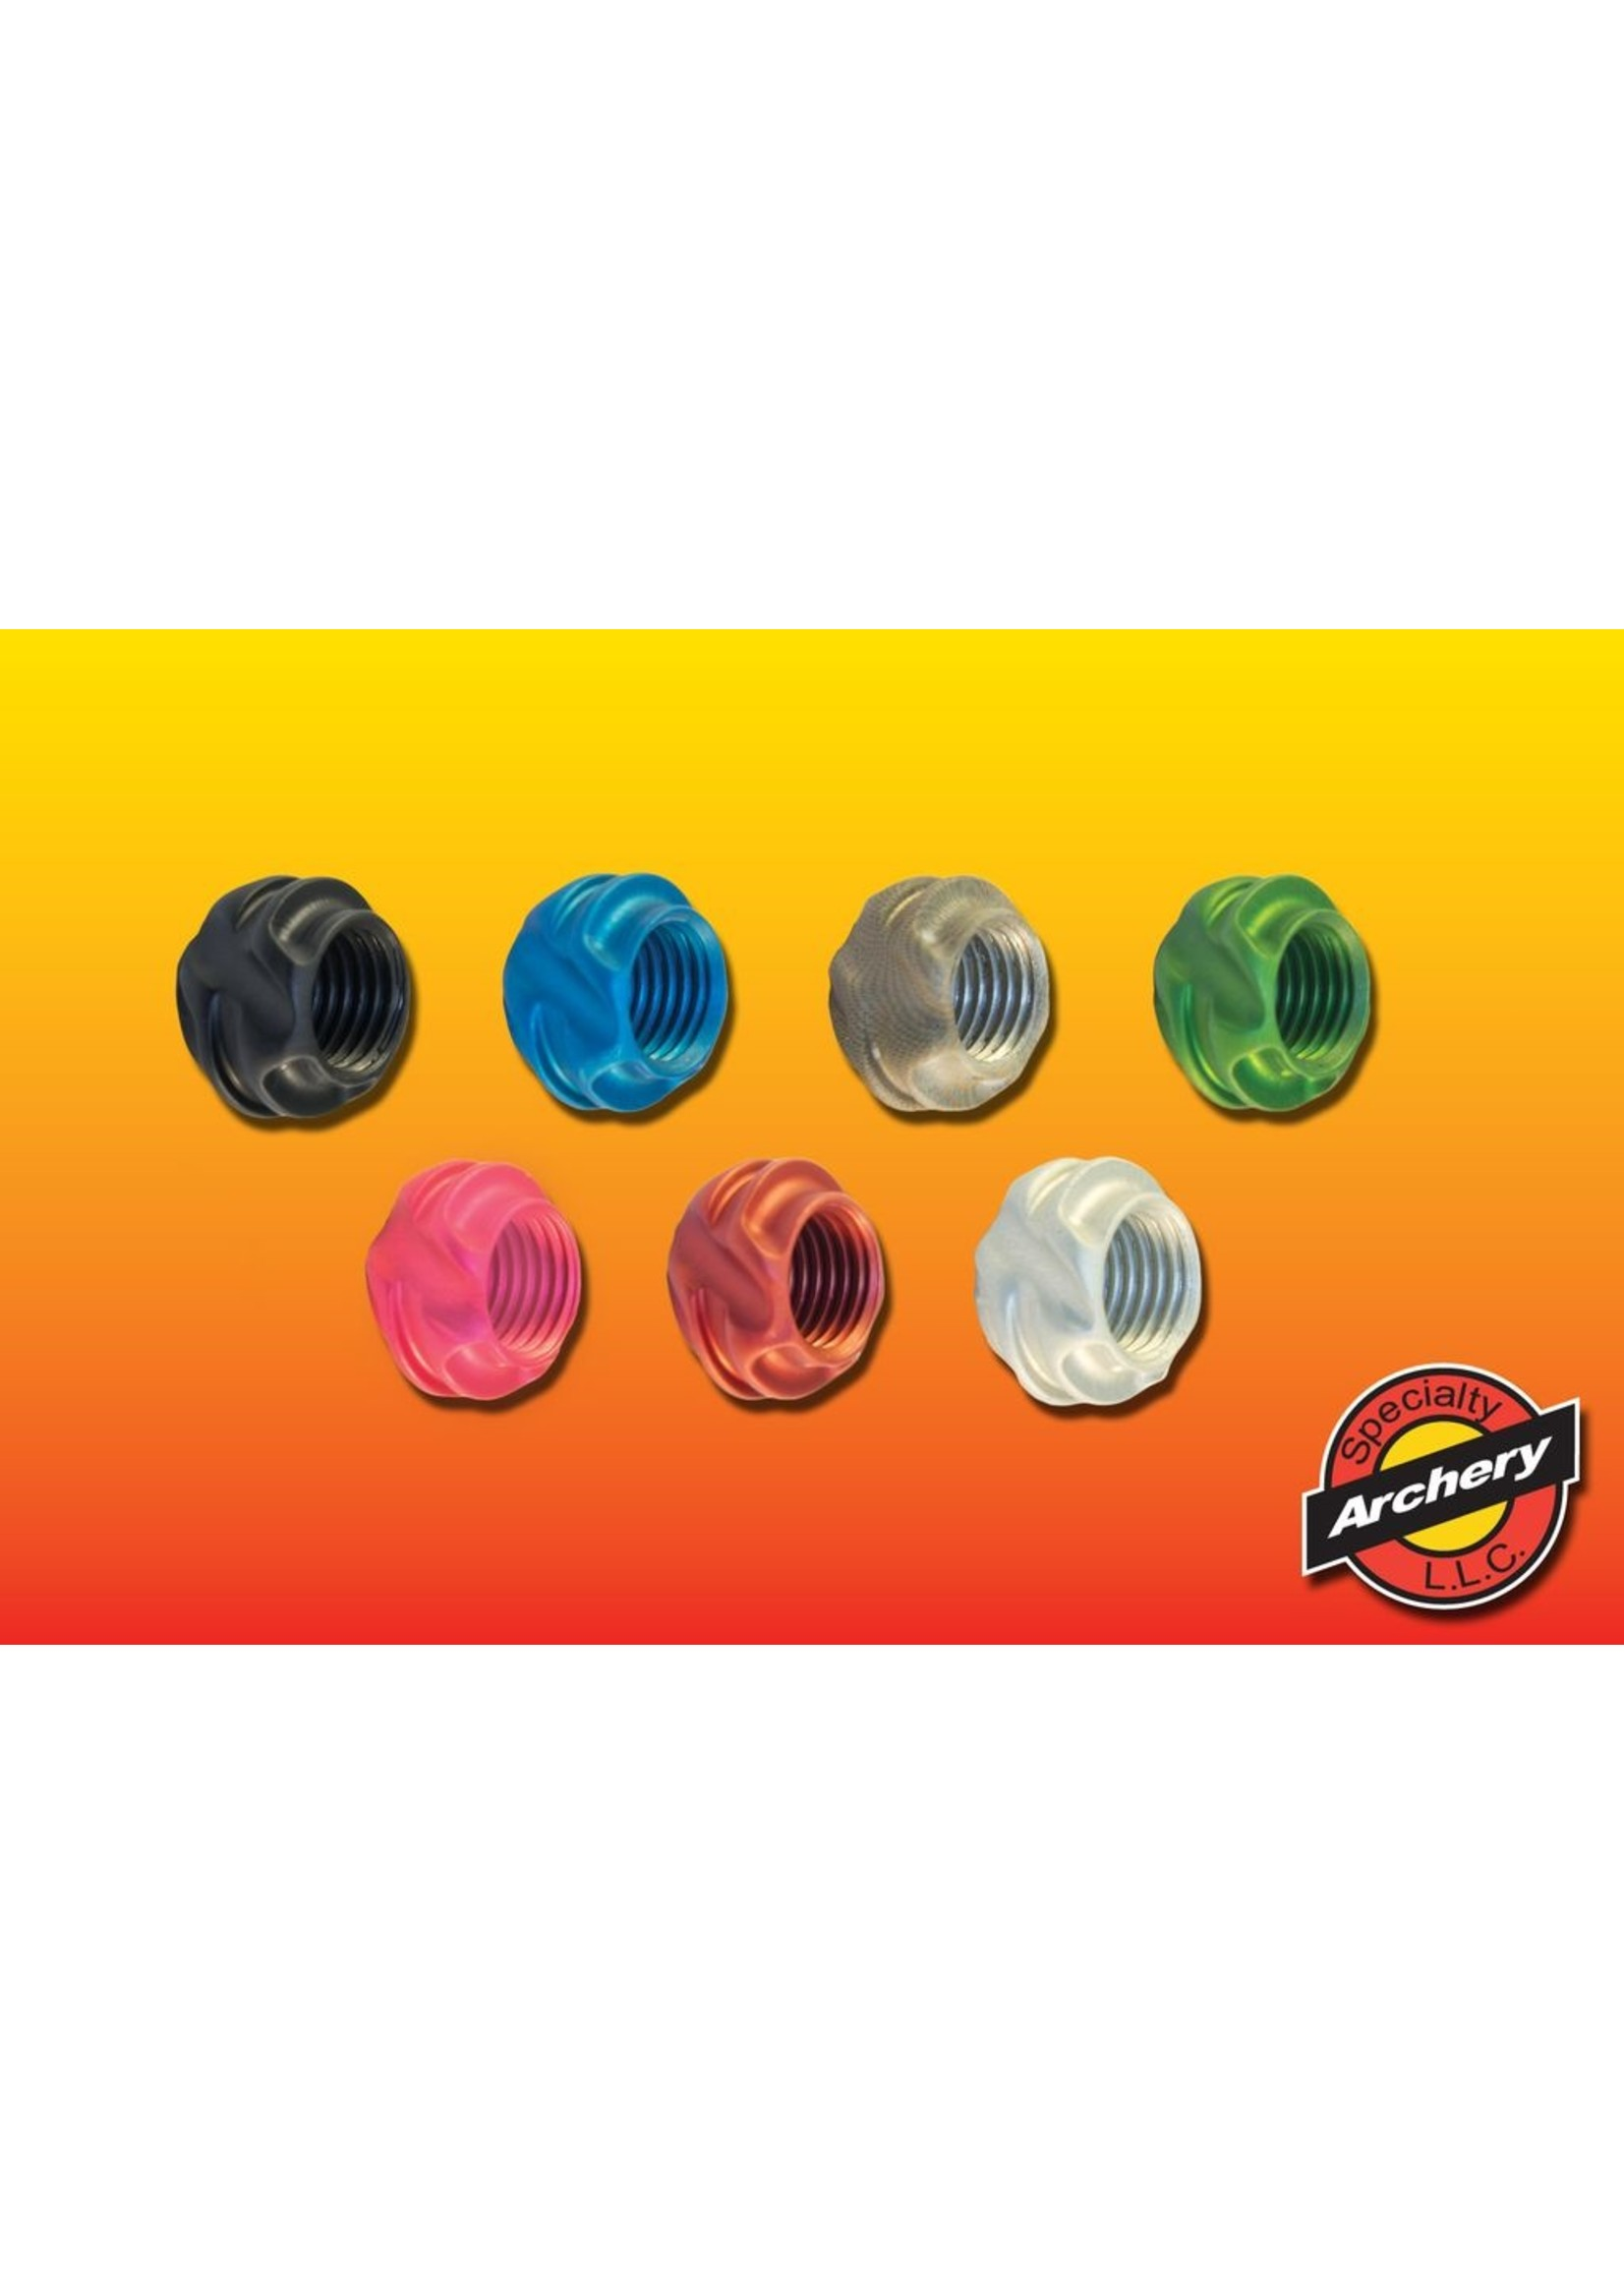 Specialty Archery Specialty Pro Series Peep Housing